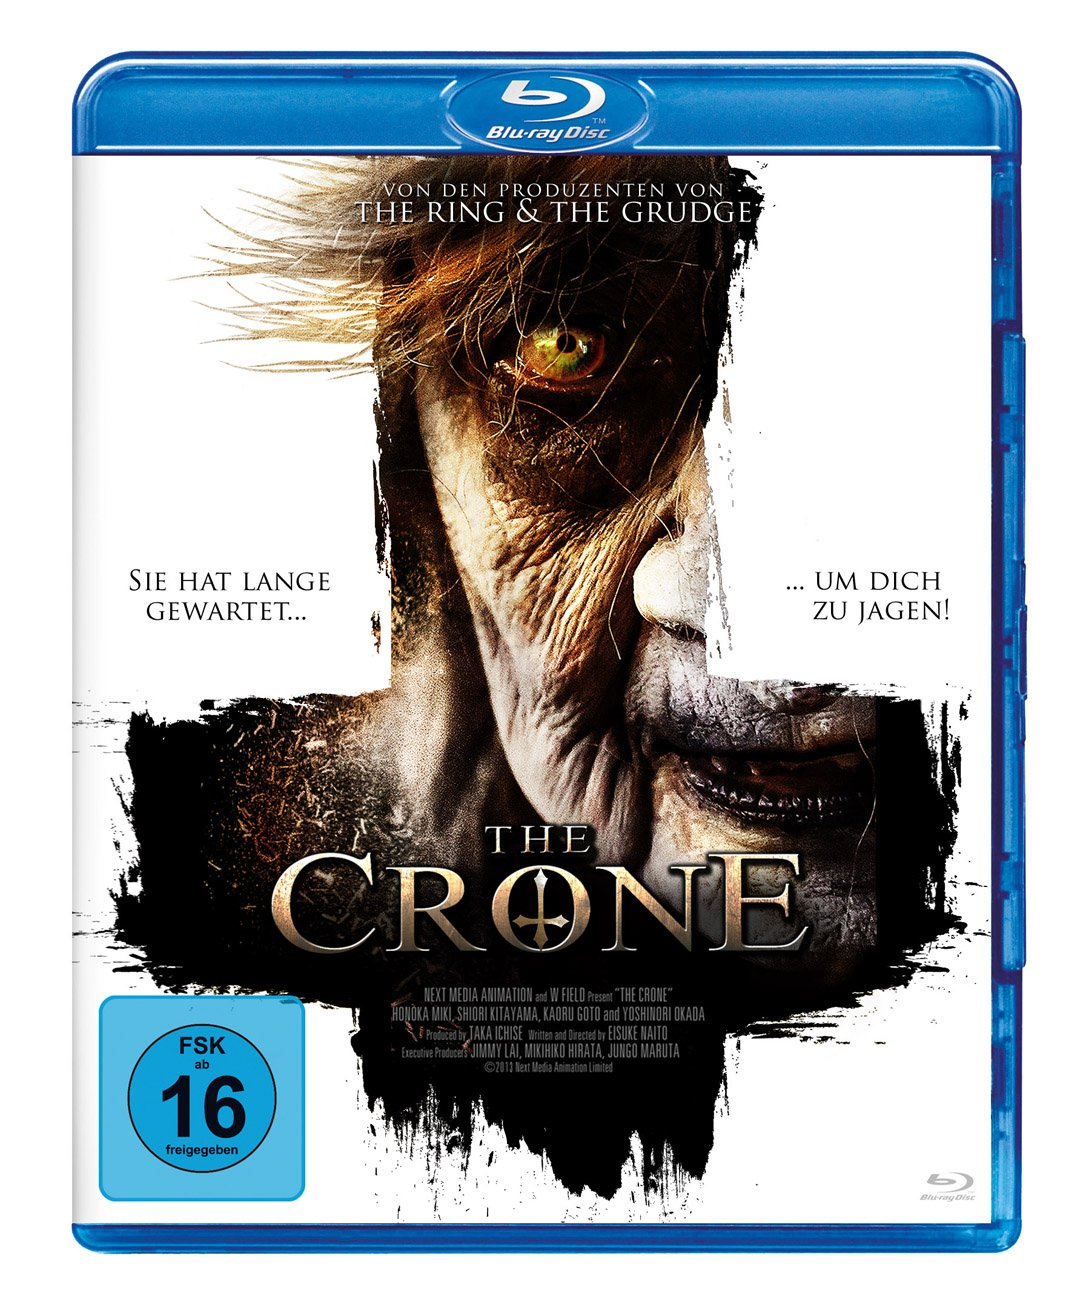 The Crone DVD